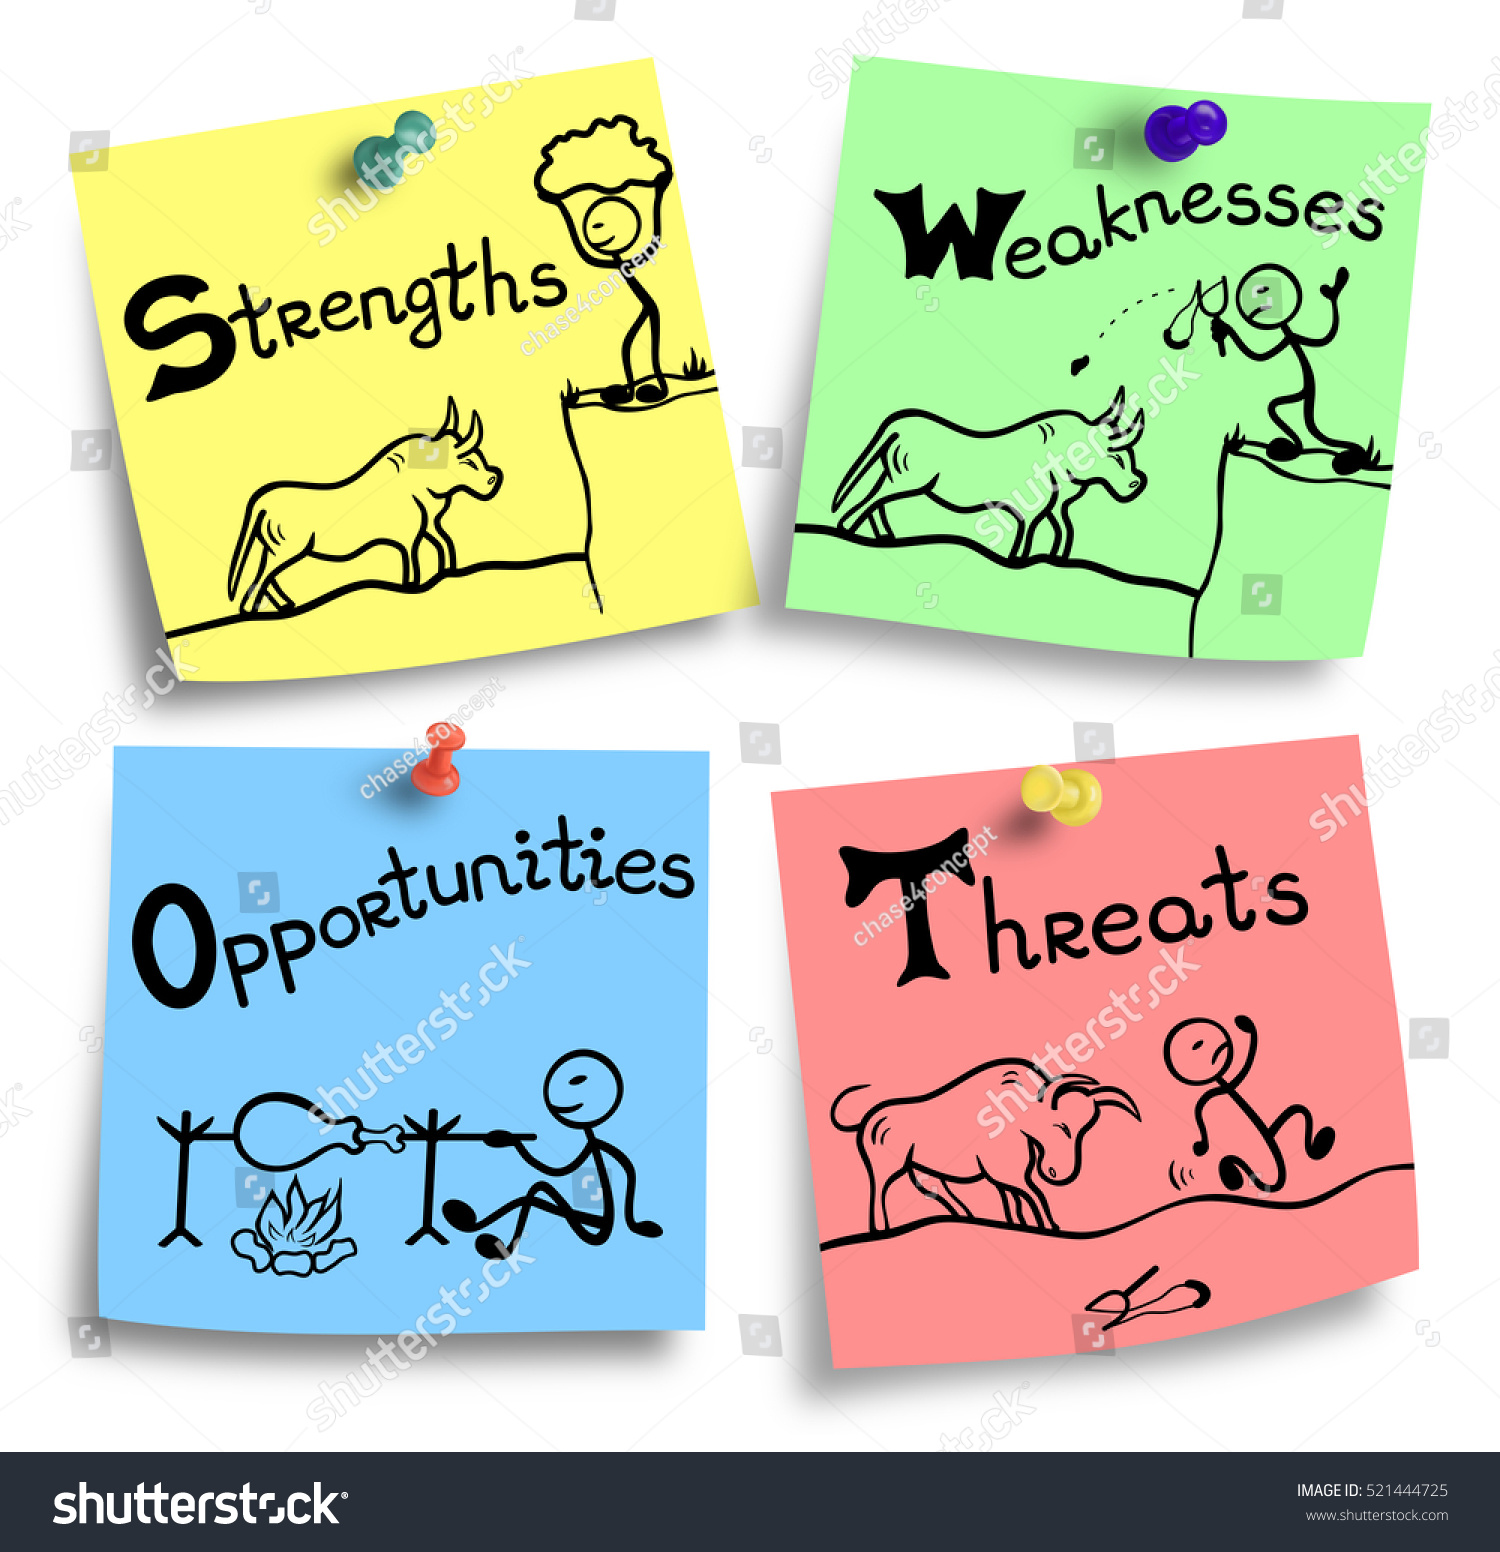 strength weaknesses opportunities threats swot analysis for sony Weaknesses 5 opportunities 6  also threats and opportunities of the company in the existing  sony ericsson swot analysis strength diversity among.